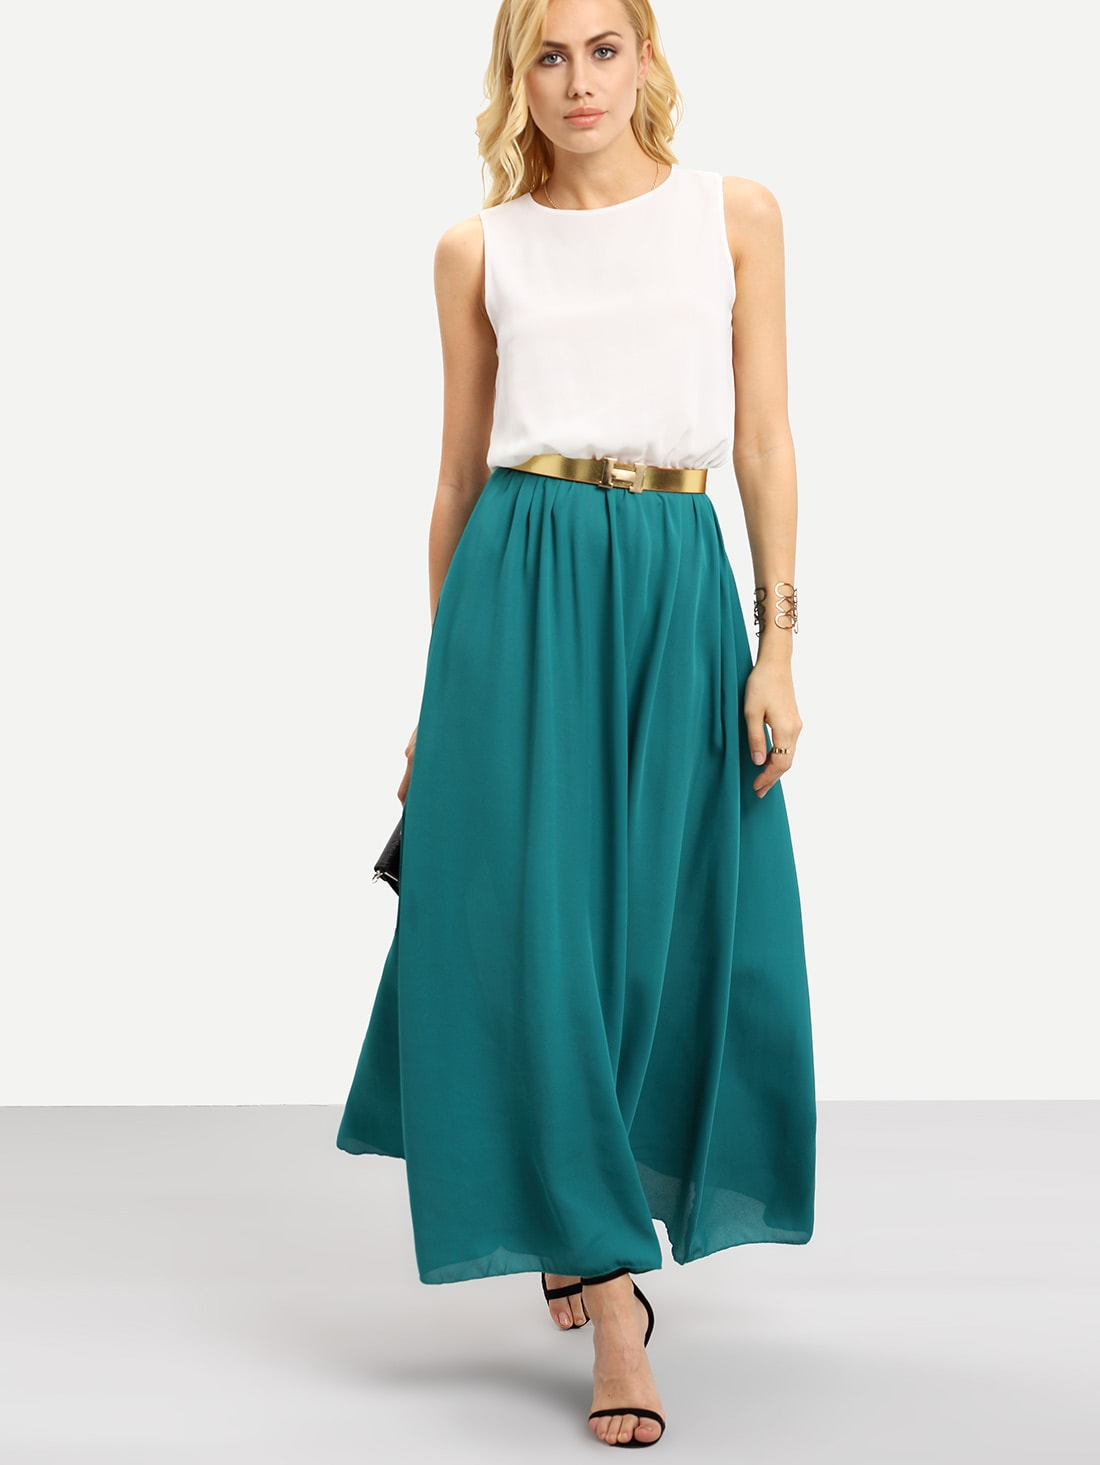 Color Block Floaty Chiffon Teal Maxi Dress With Belt 2018 xilei plastic teal duck decoy motorized with spinning wings